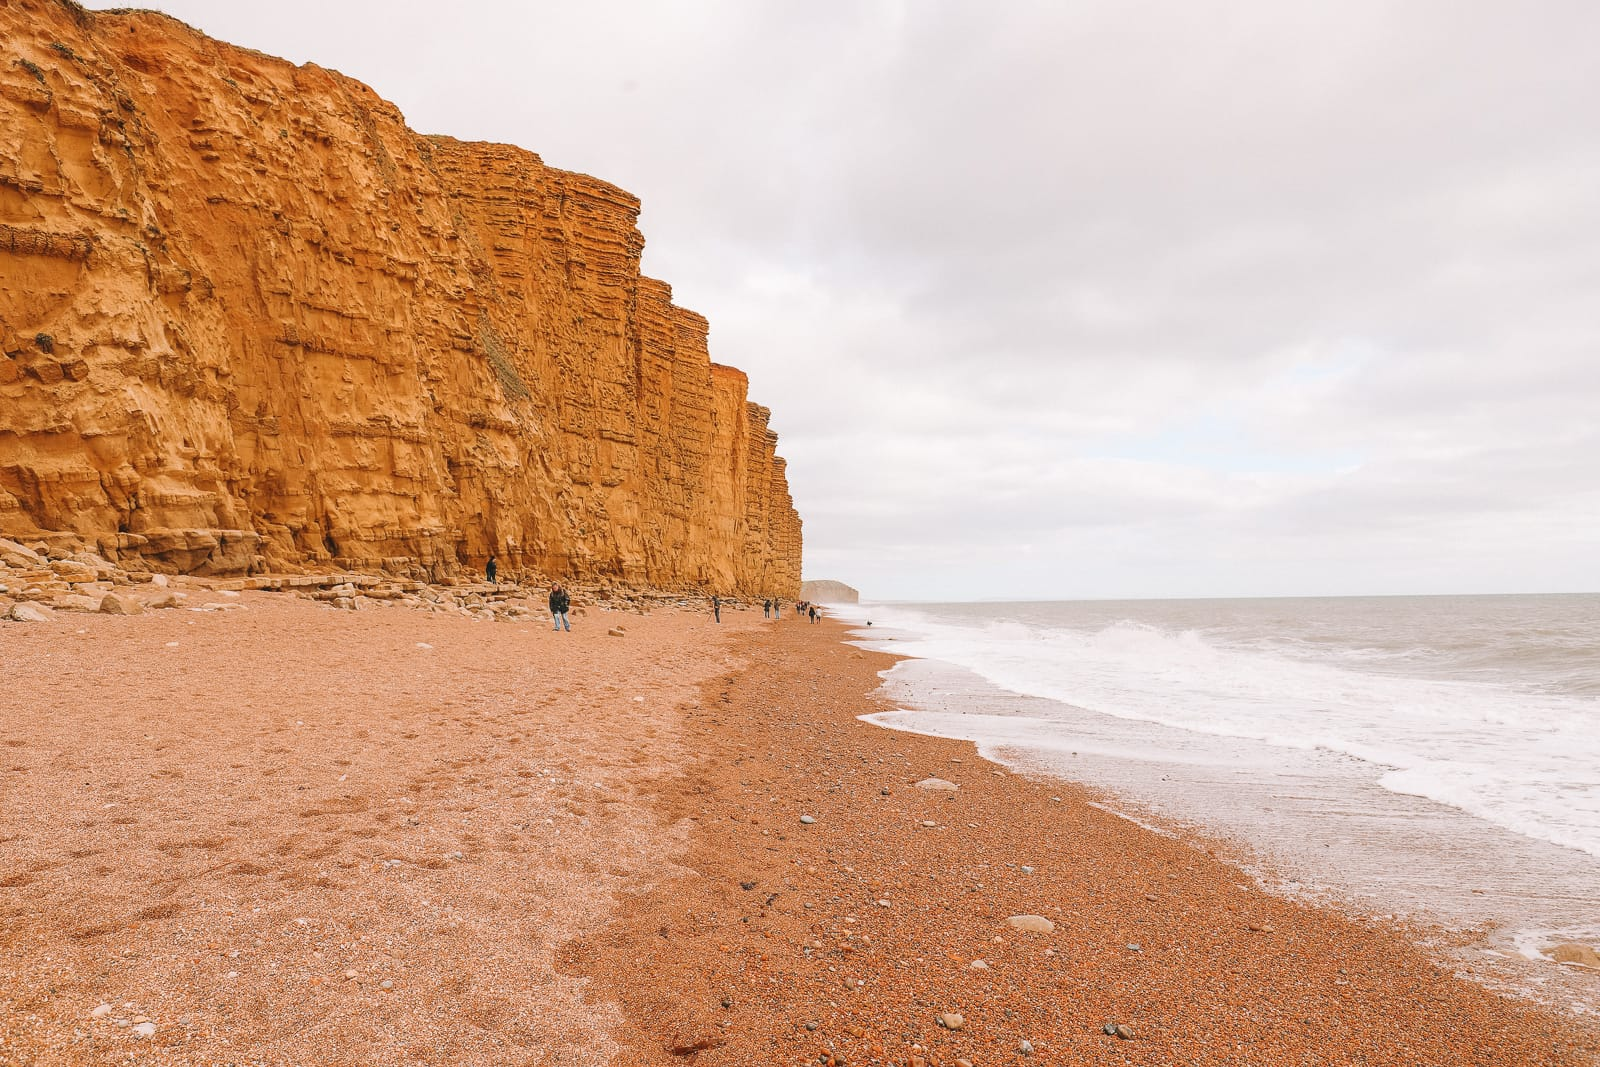 Searching For Dinosaurs And Fossils On The Jurassic Coast Of England (29)